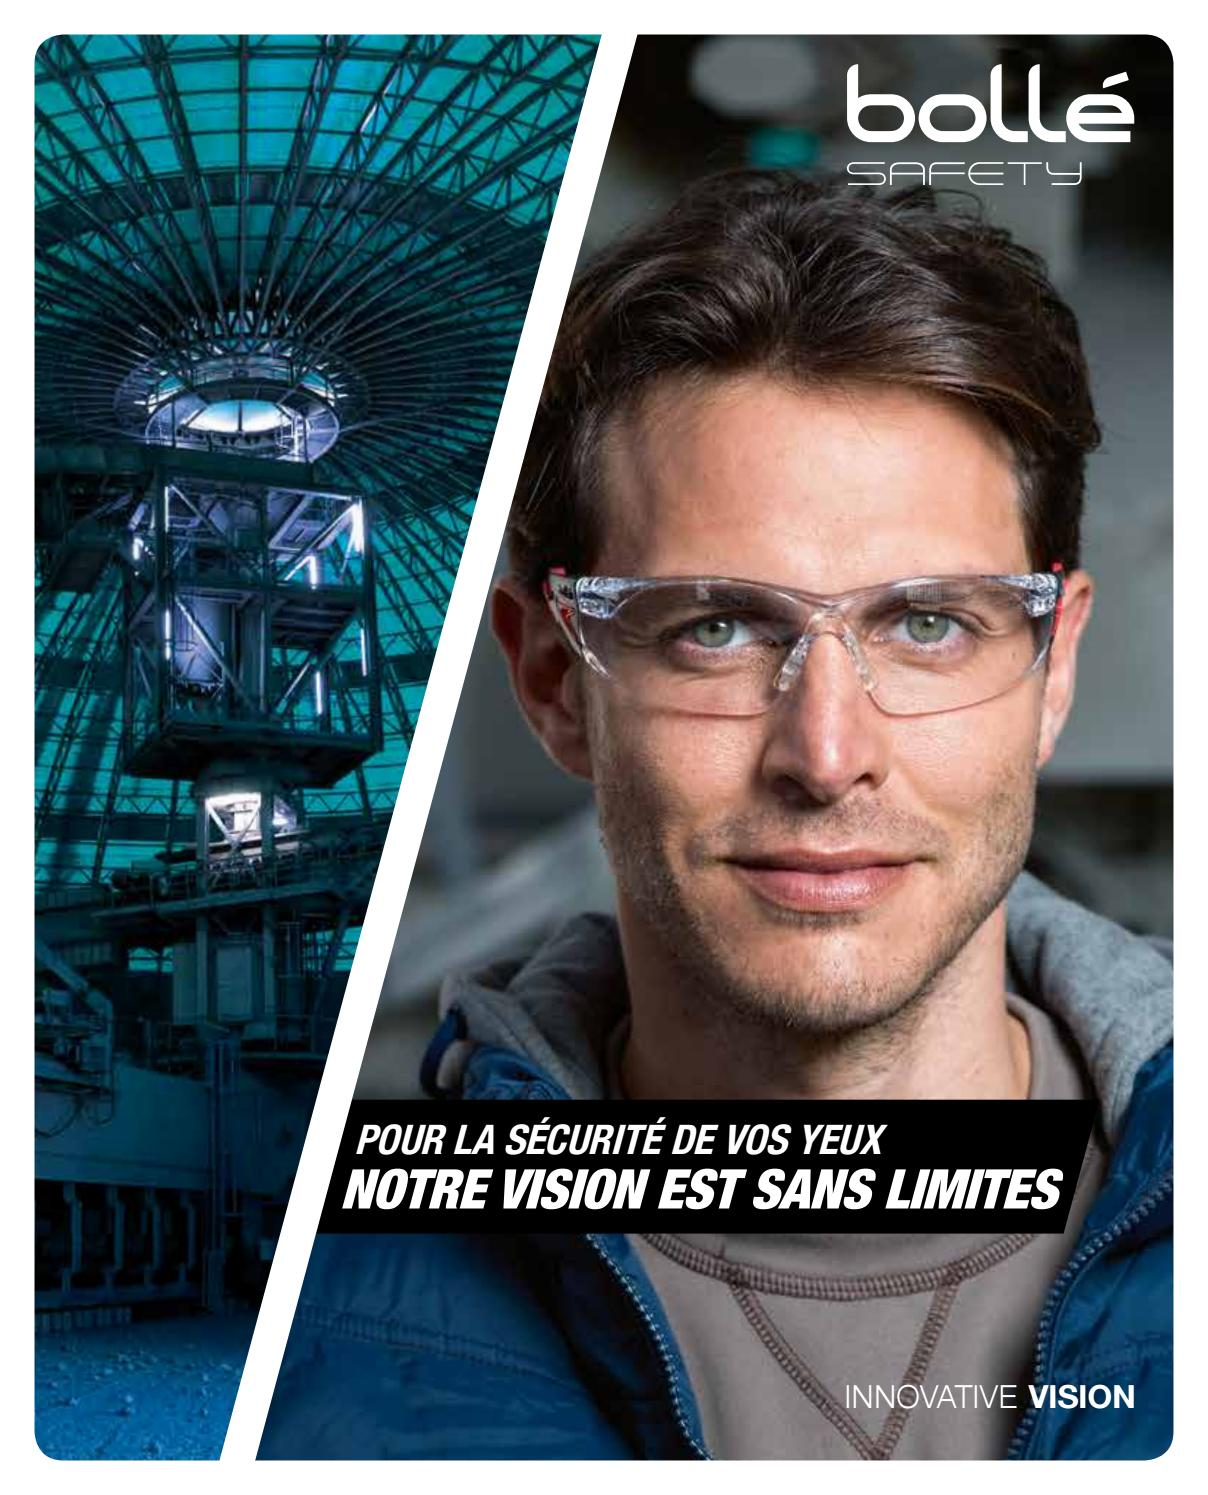 Catalogue 2017-2018 - FR by bolle-safety - issuu fccd13371e4e